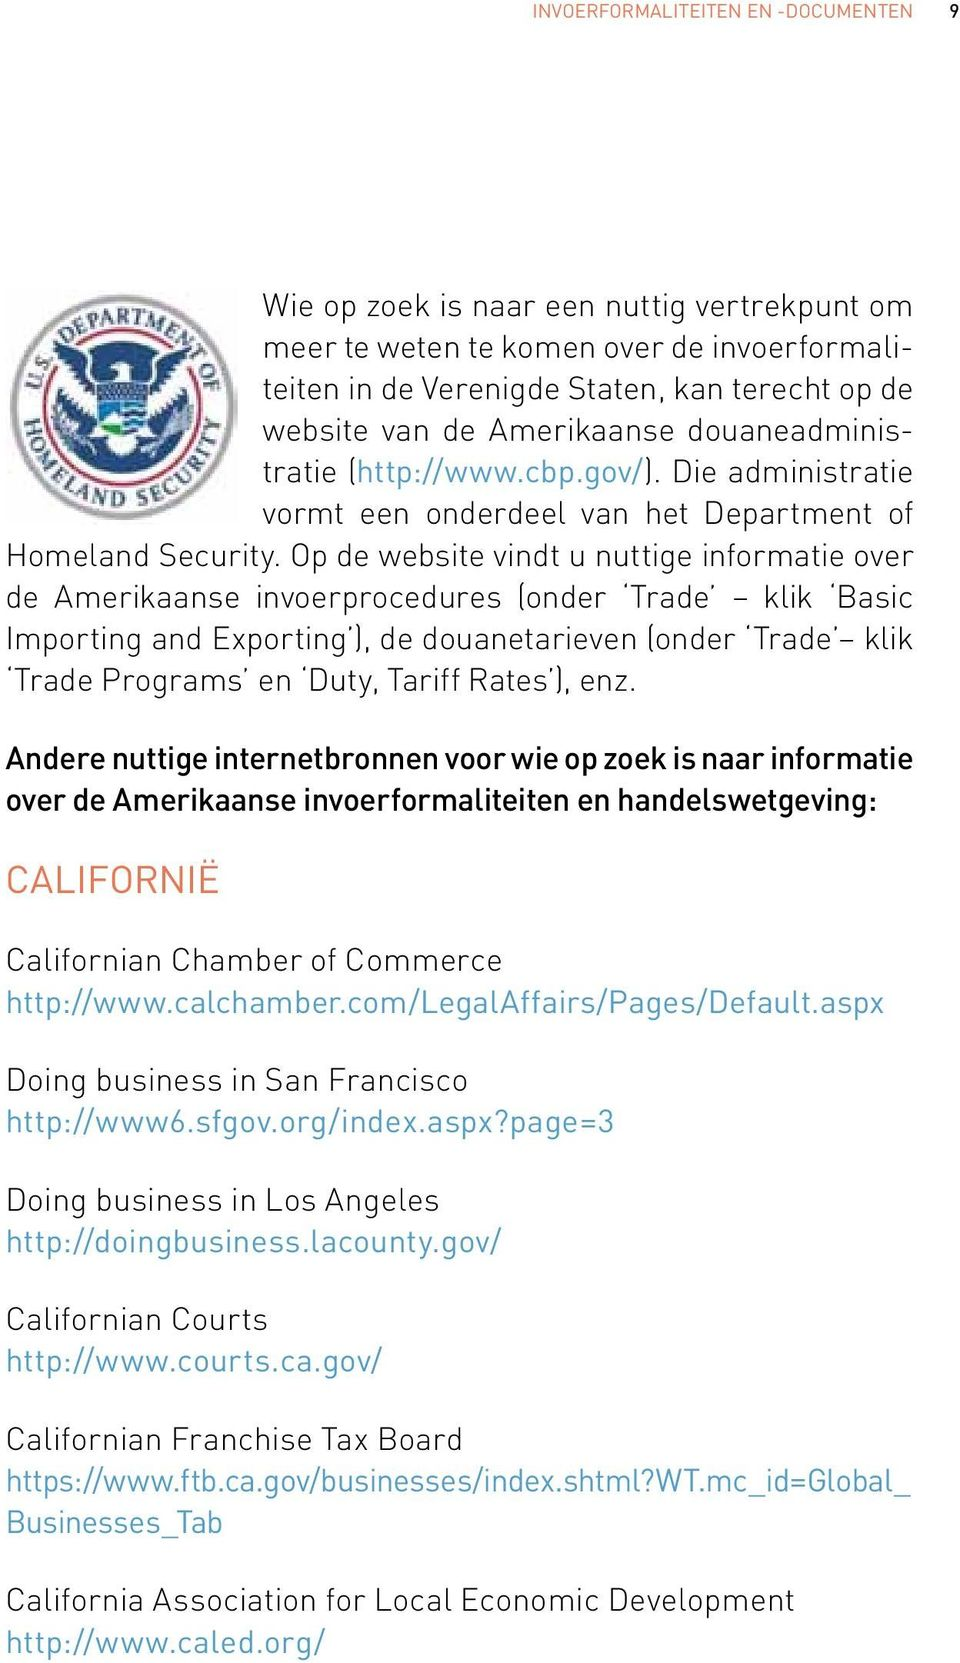 Op de website vindt u nuttige informatie over de Amerikaanse invoerprocedures (onder Trade klik Basic Importing and Exporting ), de douanetarieven (onder Trade klik Trade Programs en Duty, Tariff